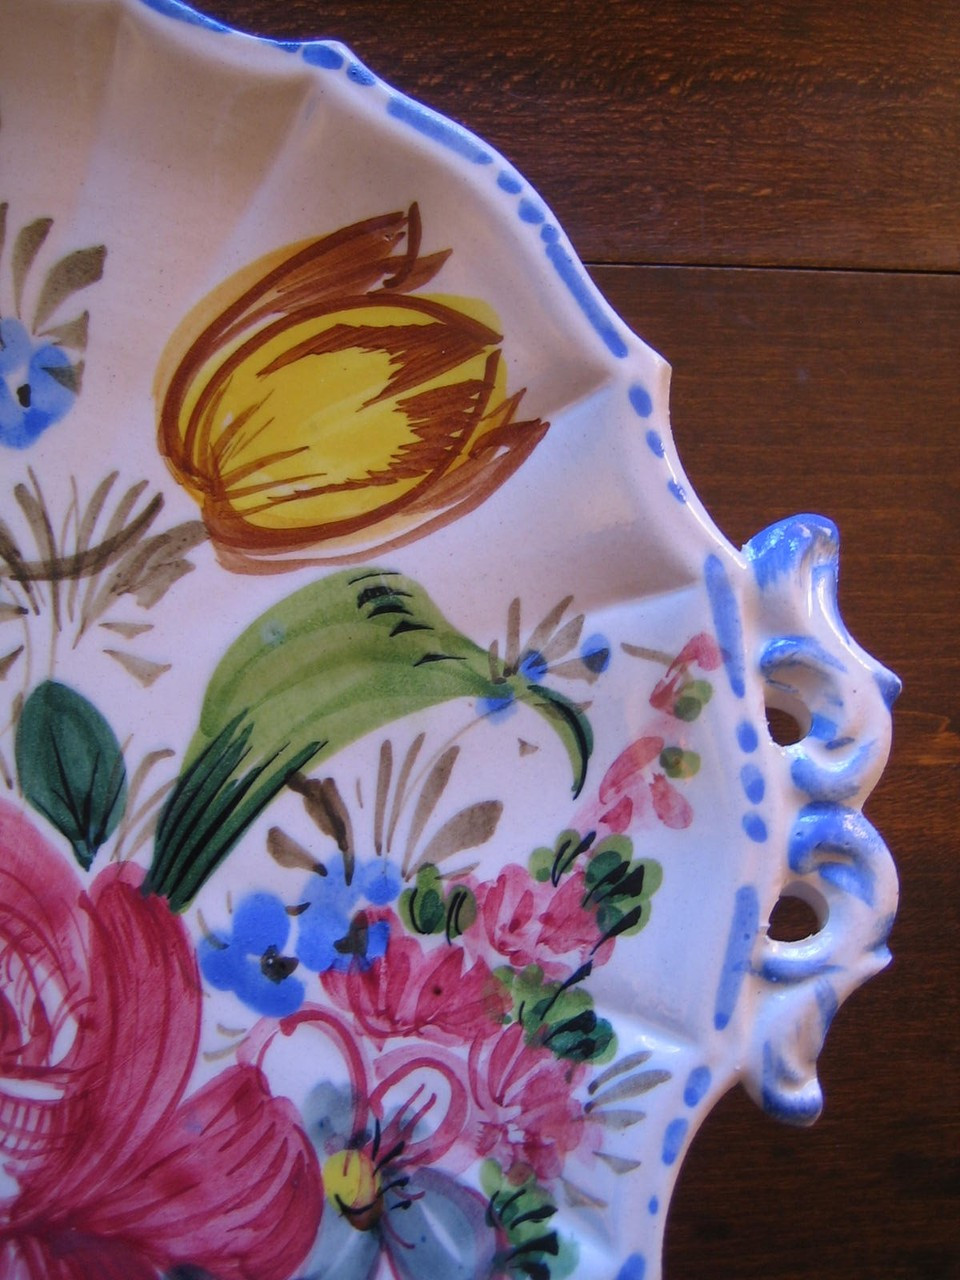 Decorative Platter - Vintage Handpainted in Italy Rose Tulip Fluted Edge Handled Edge www.DecorativeDishes.net